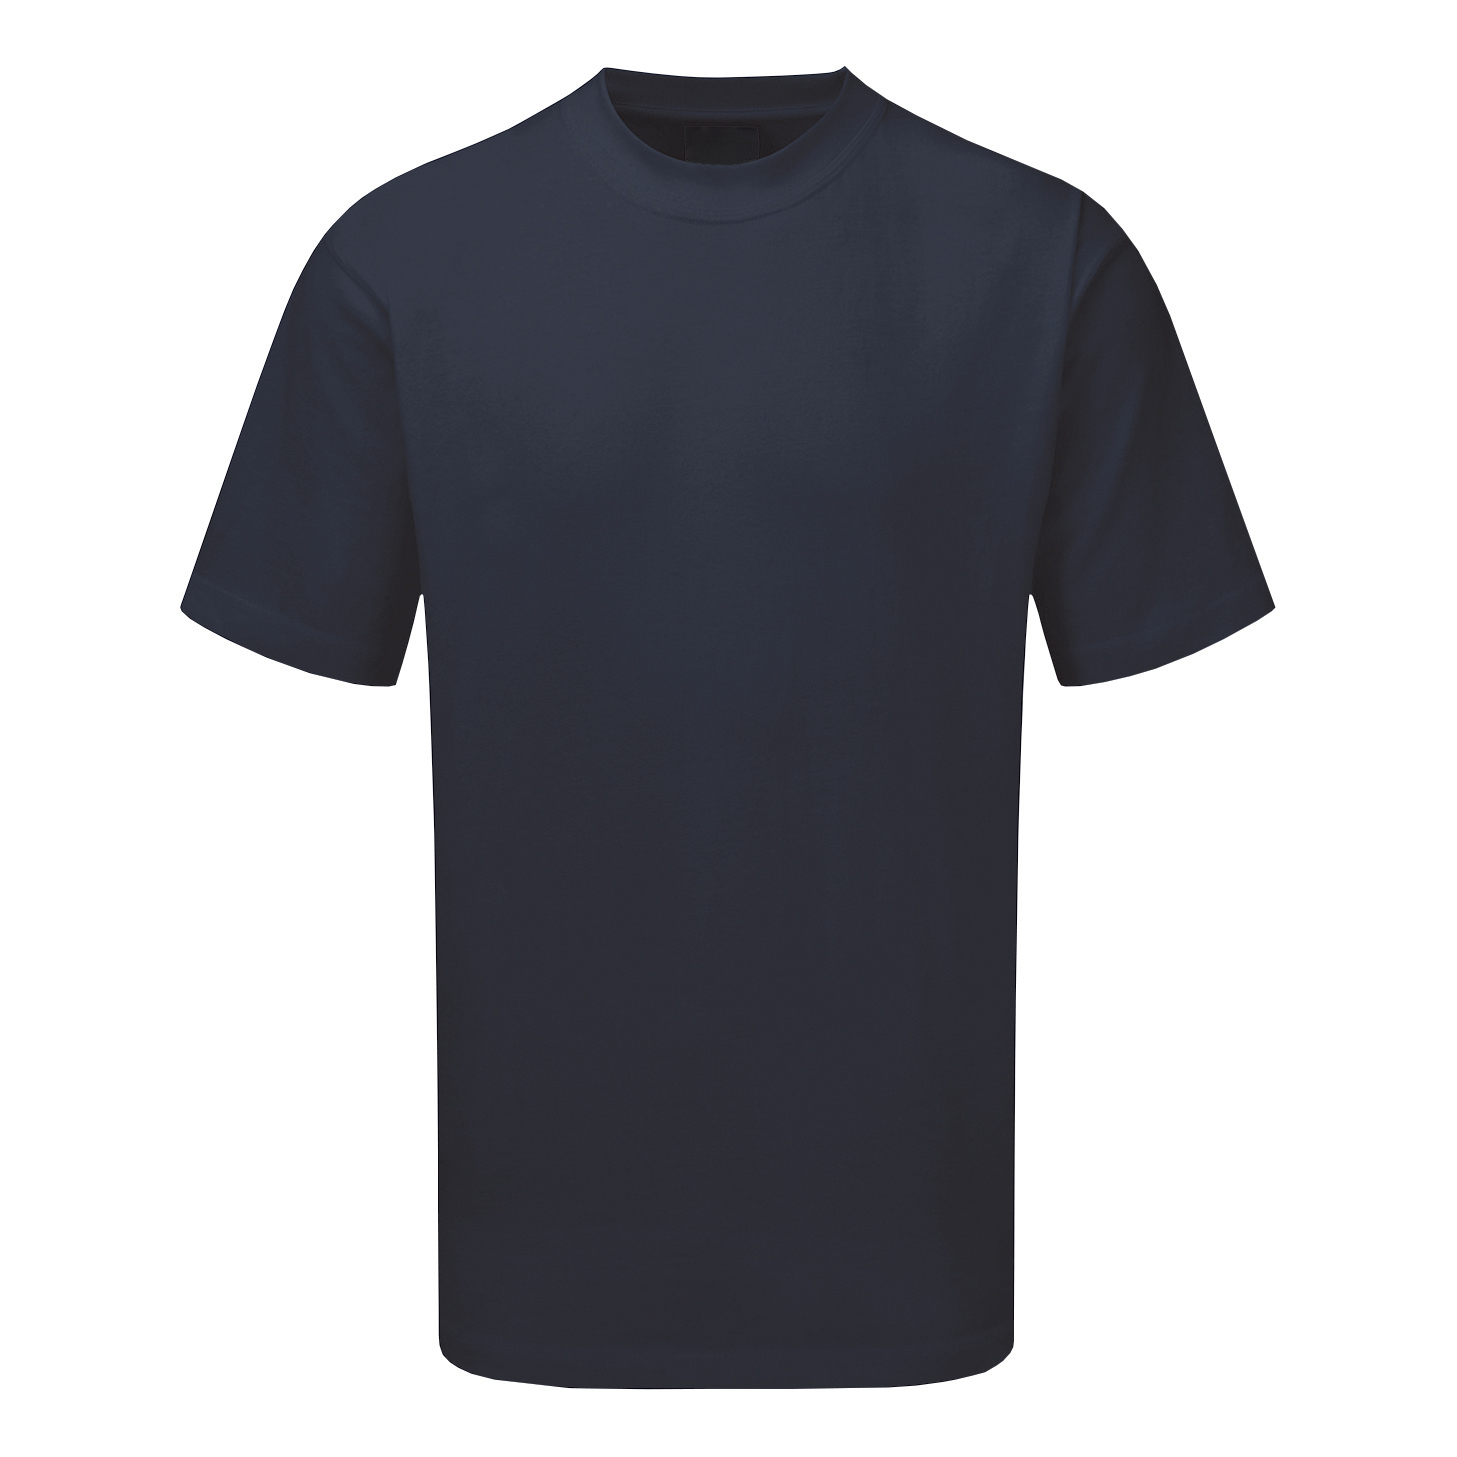 Premium T-Shirt Polycotton Triple Stitched Size XL Navy Blue Ref CLCTSHWNXL *Up to 3 Day Leadtime*